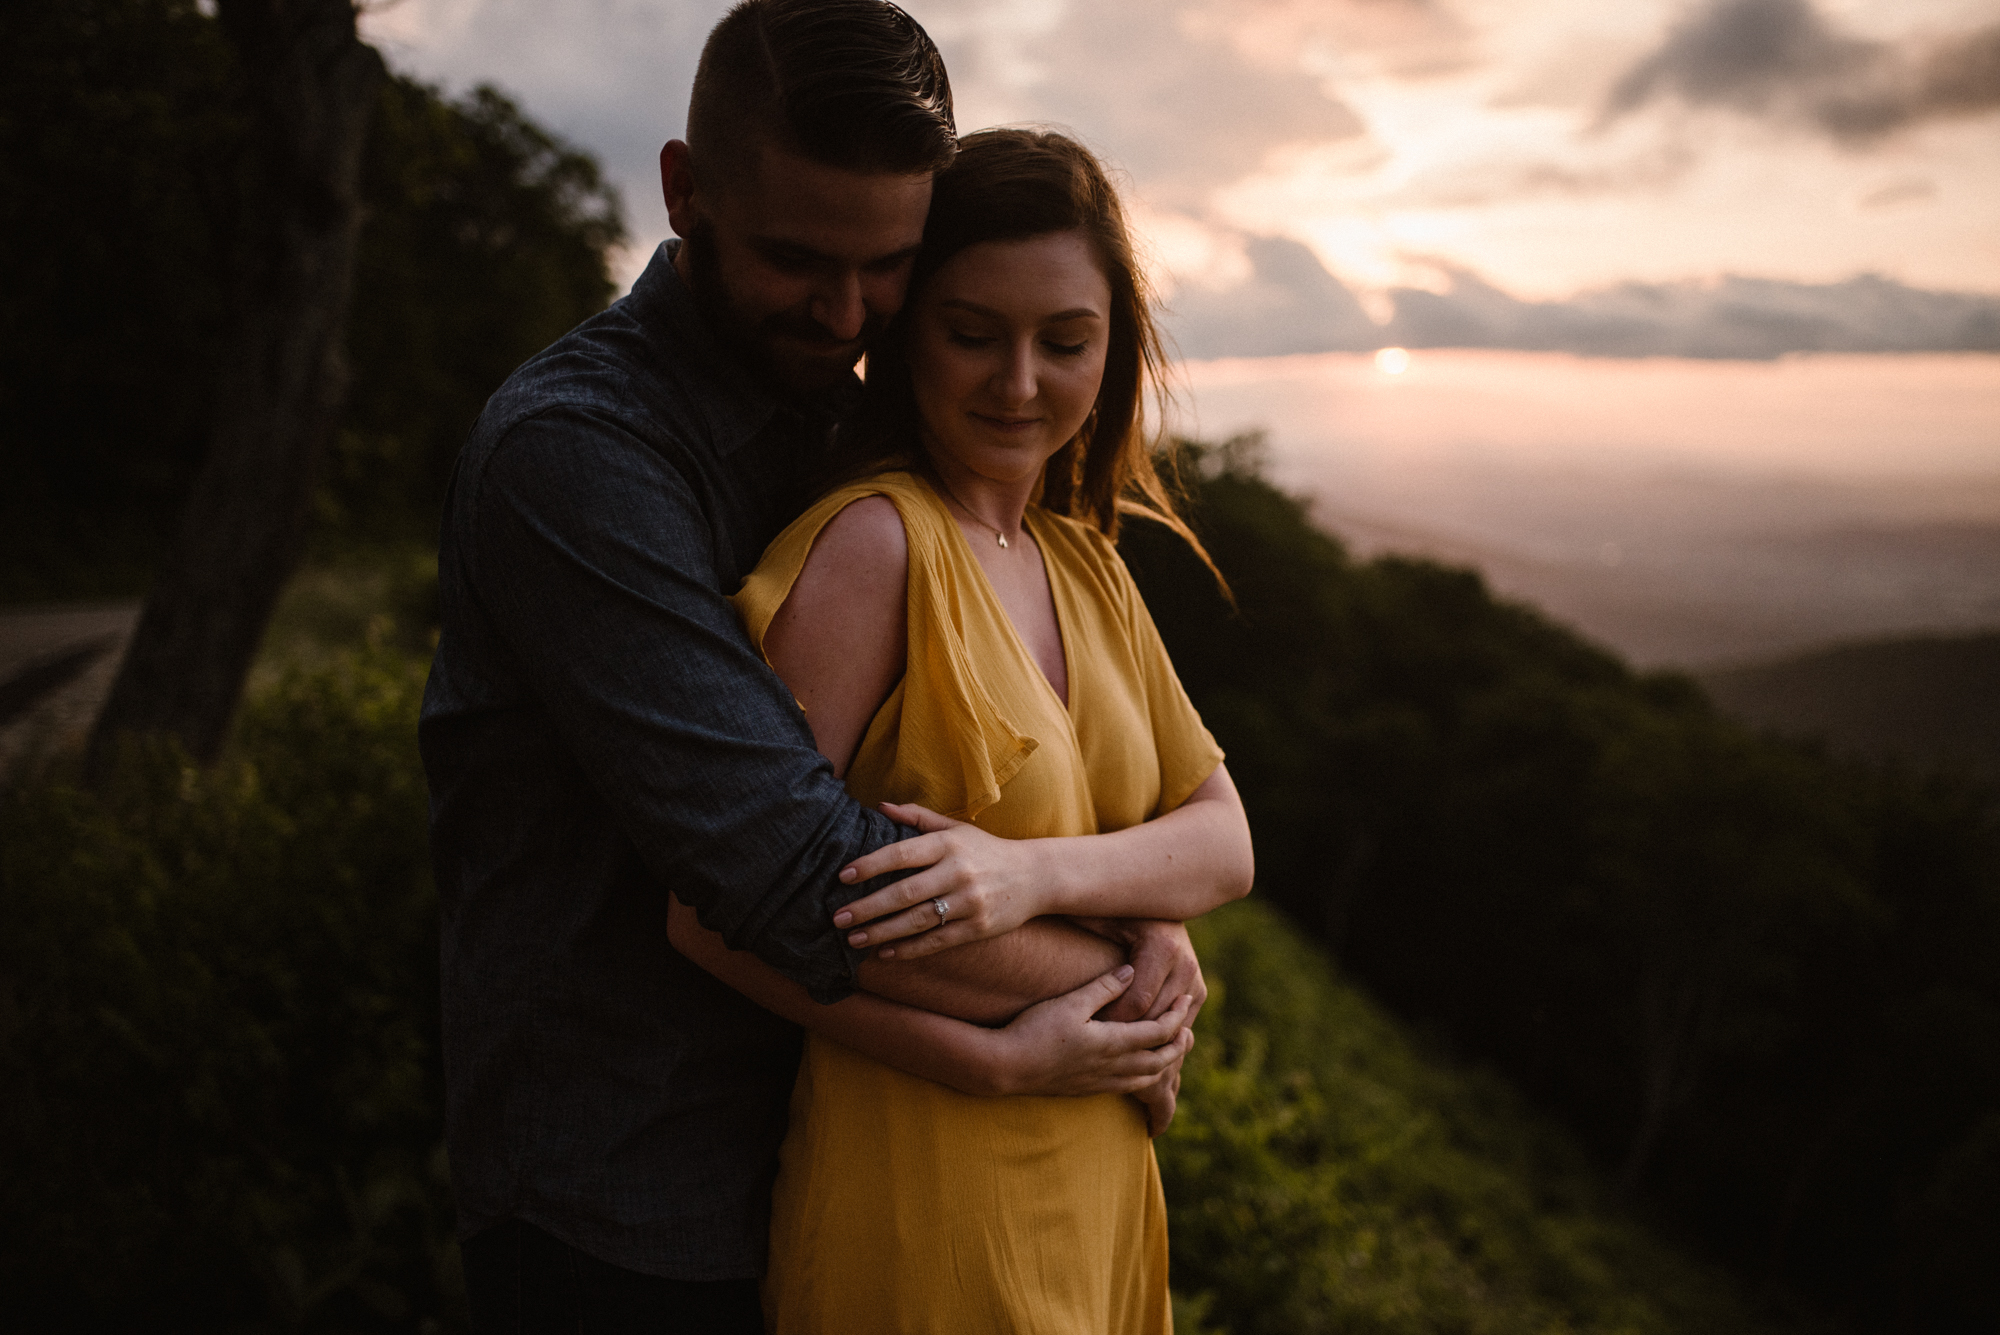 Camryn and Larry Sunrise Engagement Session in Shenandoah National Park - Things to Do in Luray Virginia - Adventurous Couple Photo Shoot White Sails Creative_5.jpg